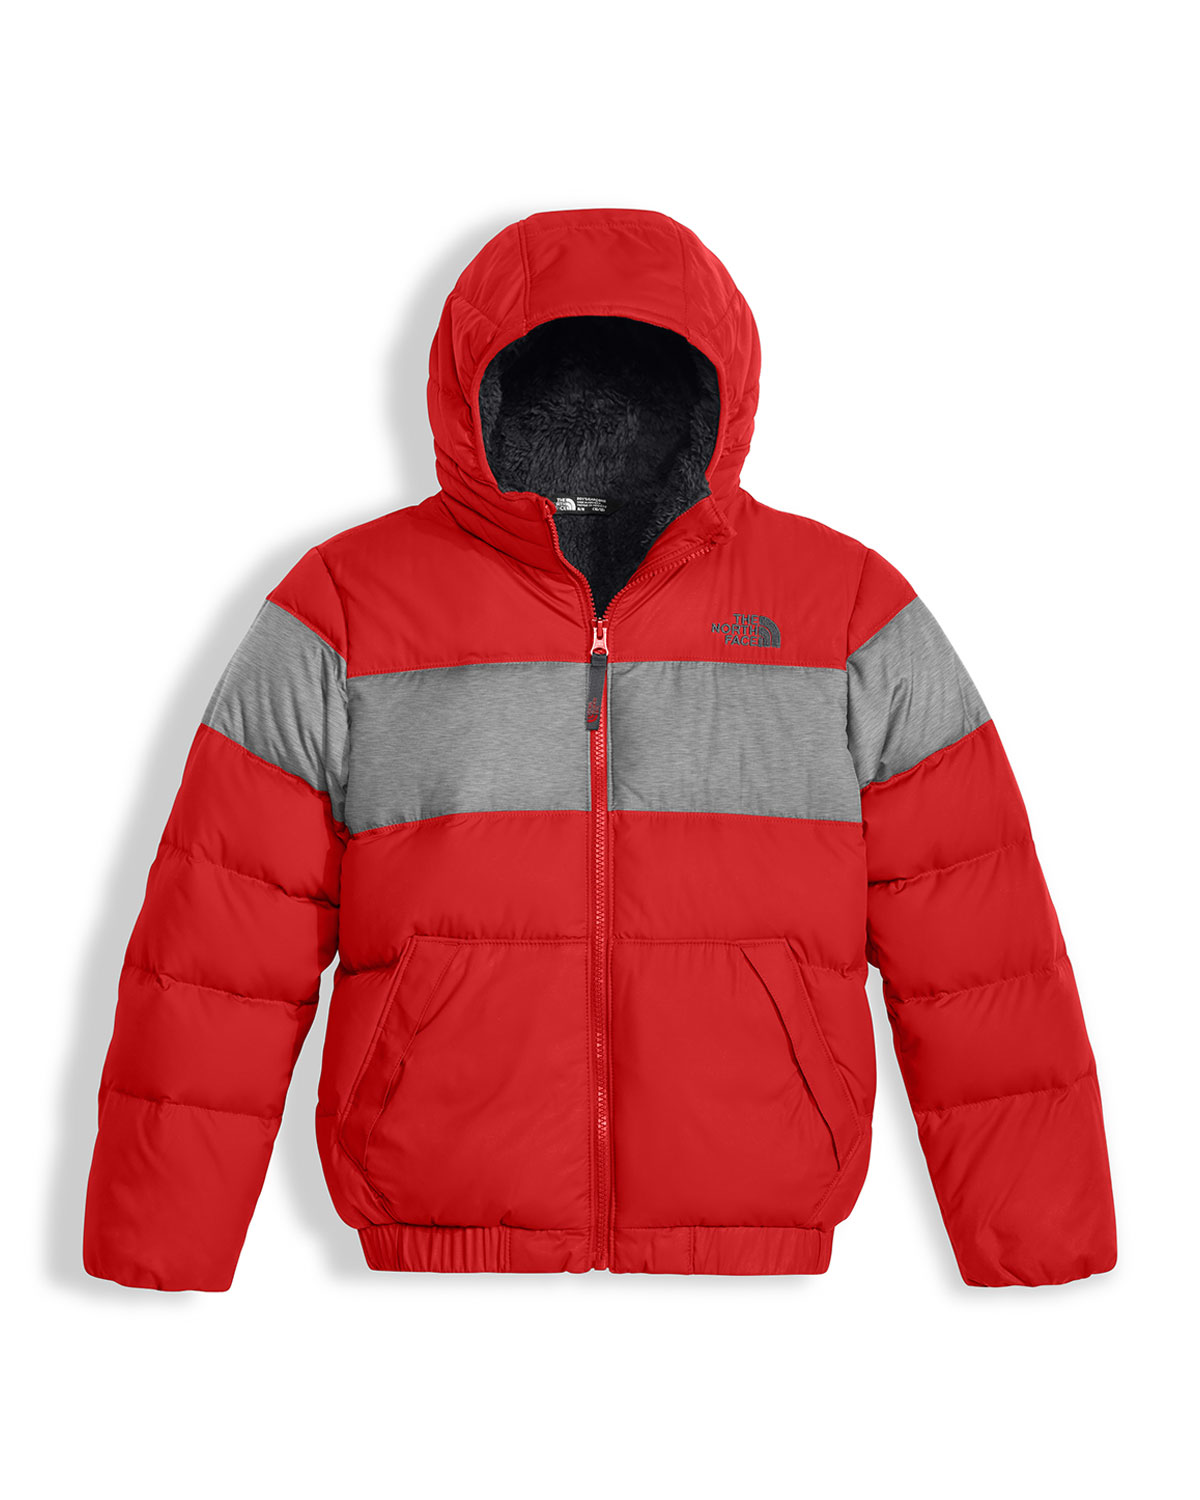 eac4bab4f8af The North Face Boys  Moondoggy 2.0 Down Quilted Jacket